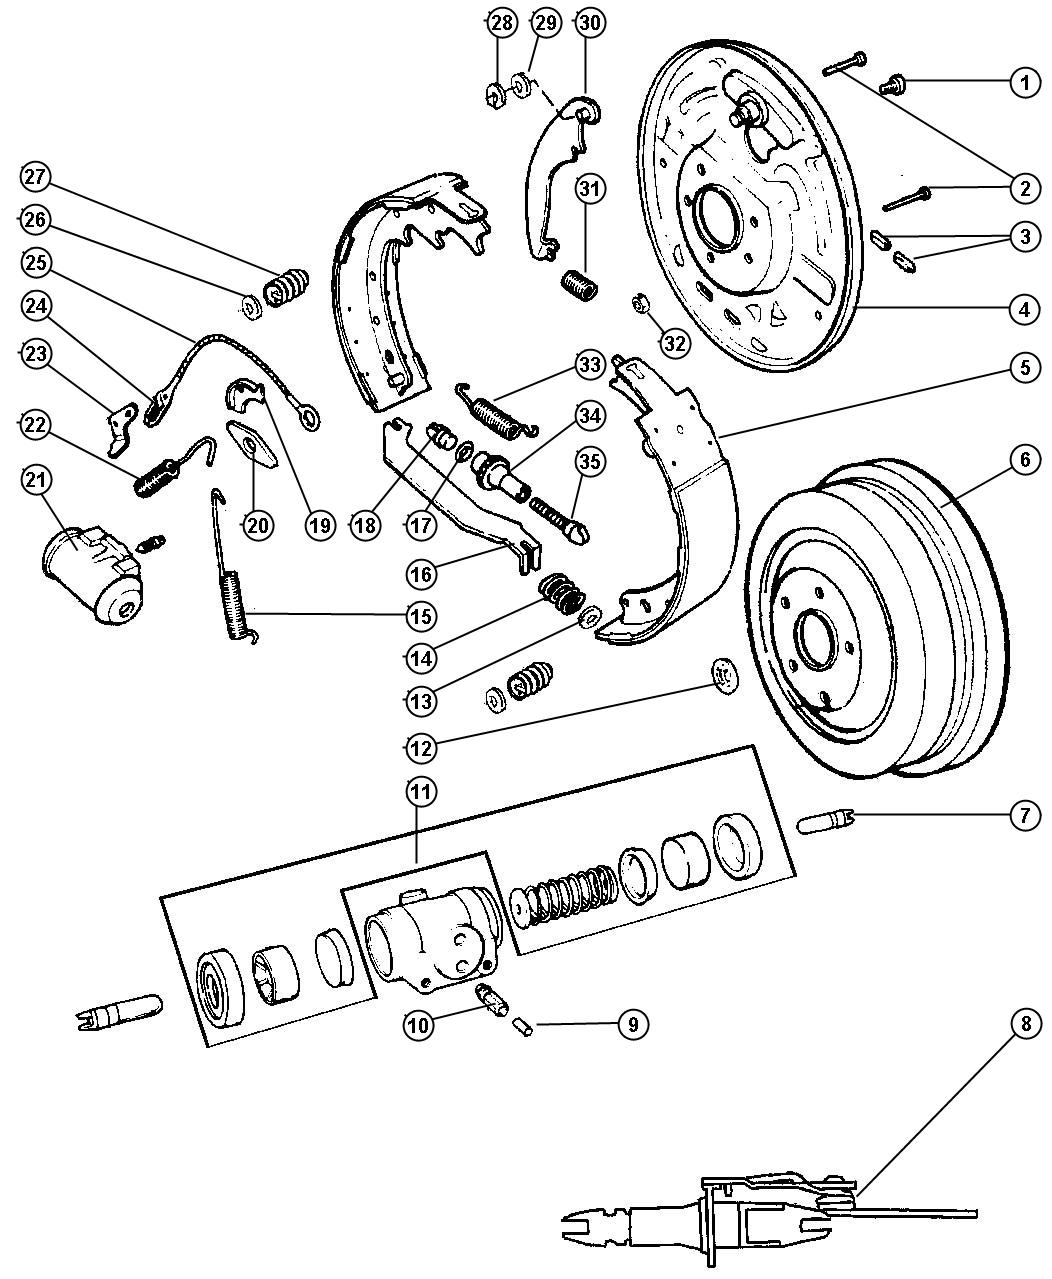 1997 Saab 900 Cooling Fan Wiring Diagram. Saab. Auto